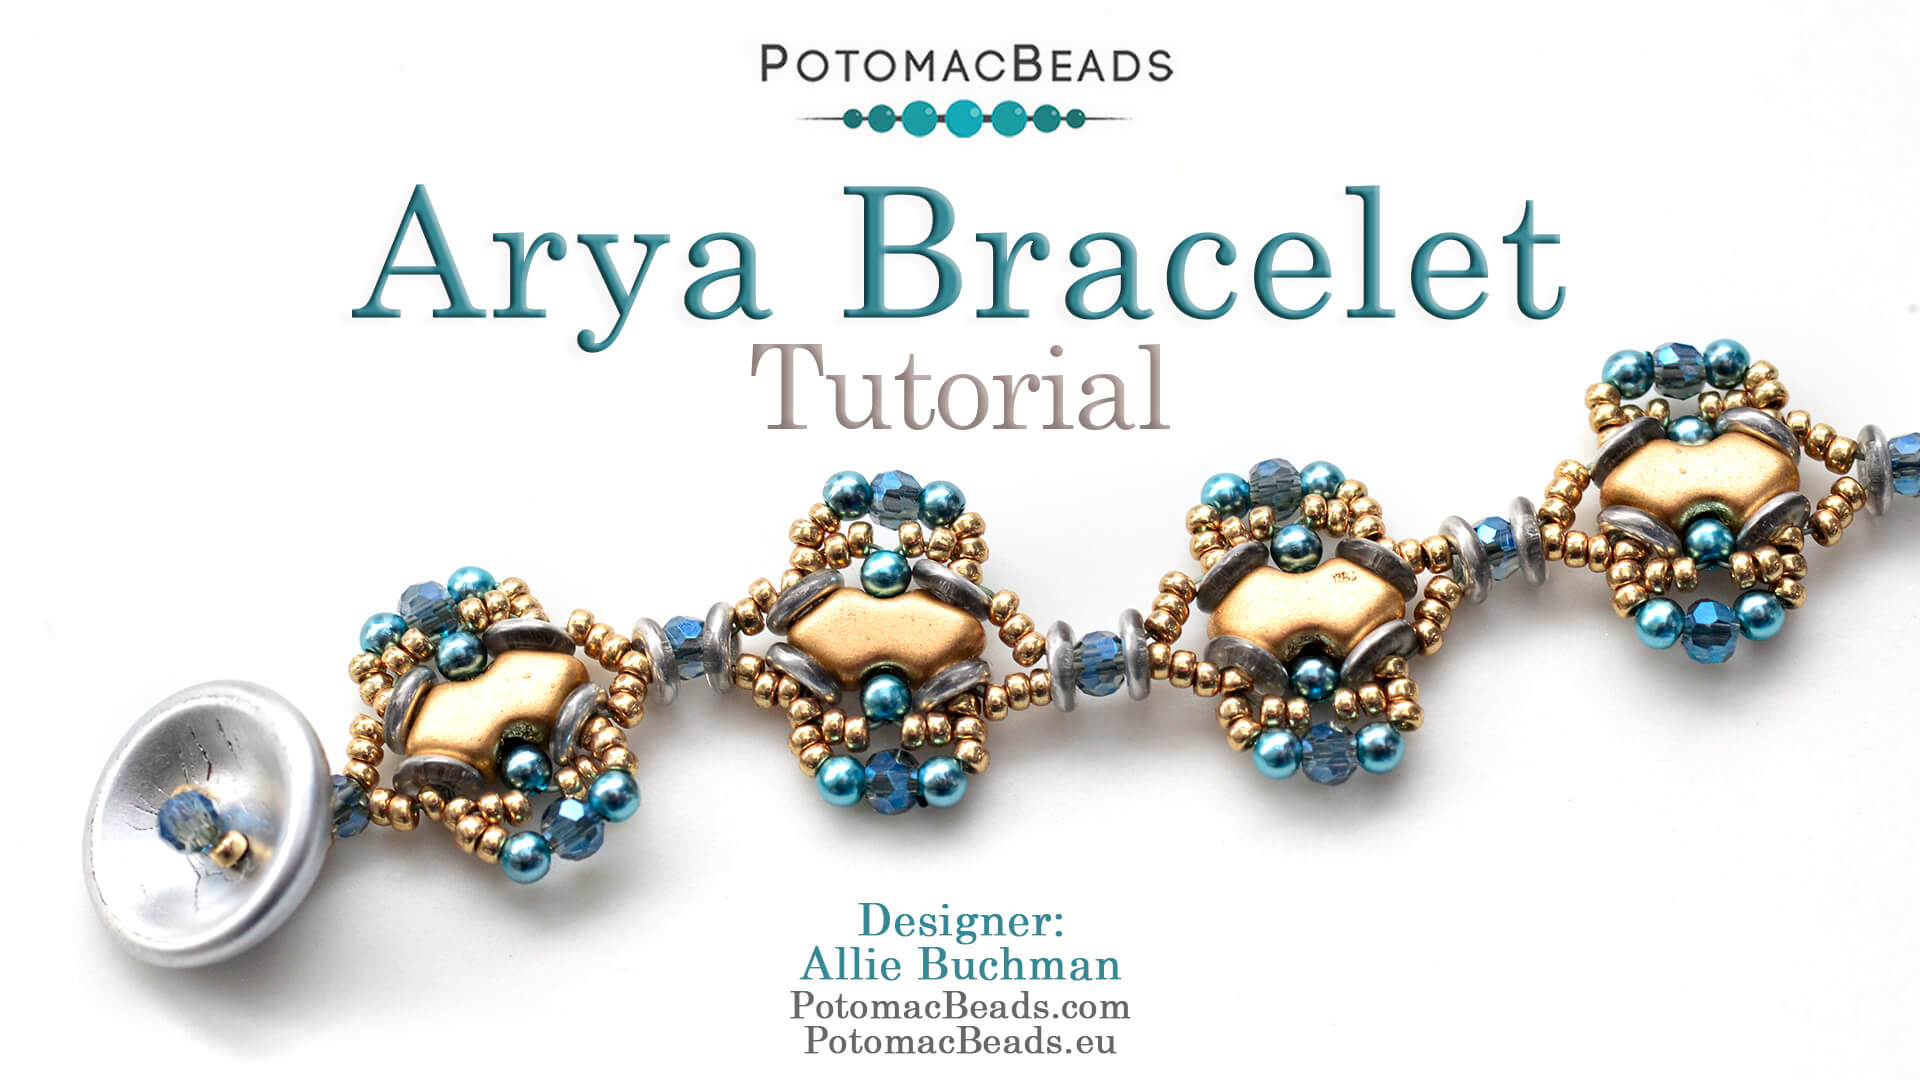 How to Bead Jewelry / Videos Sorted by Beads / Pearl Videos (Czech, Freshwater, Potomac Pearls) / Arya BraceleT Tutorial